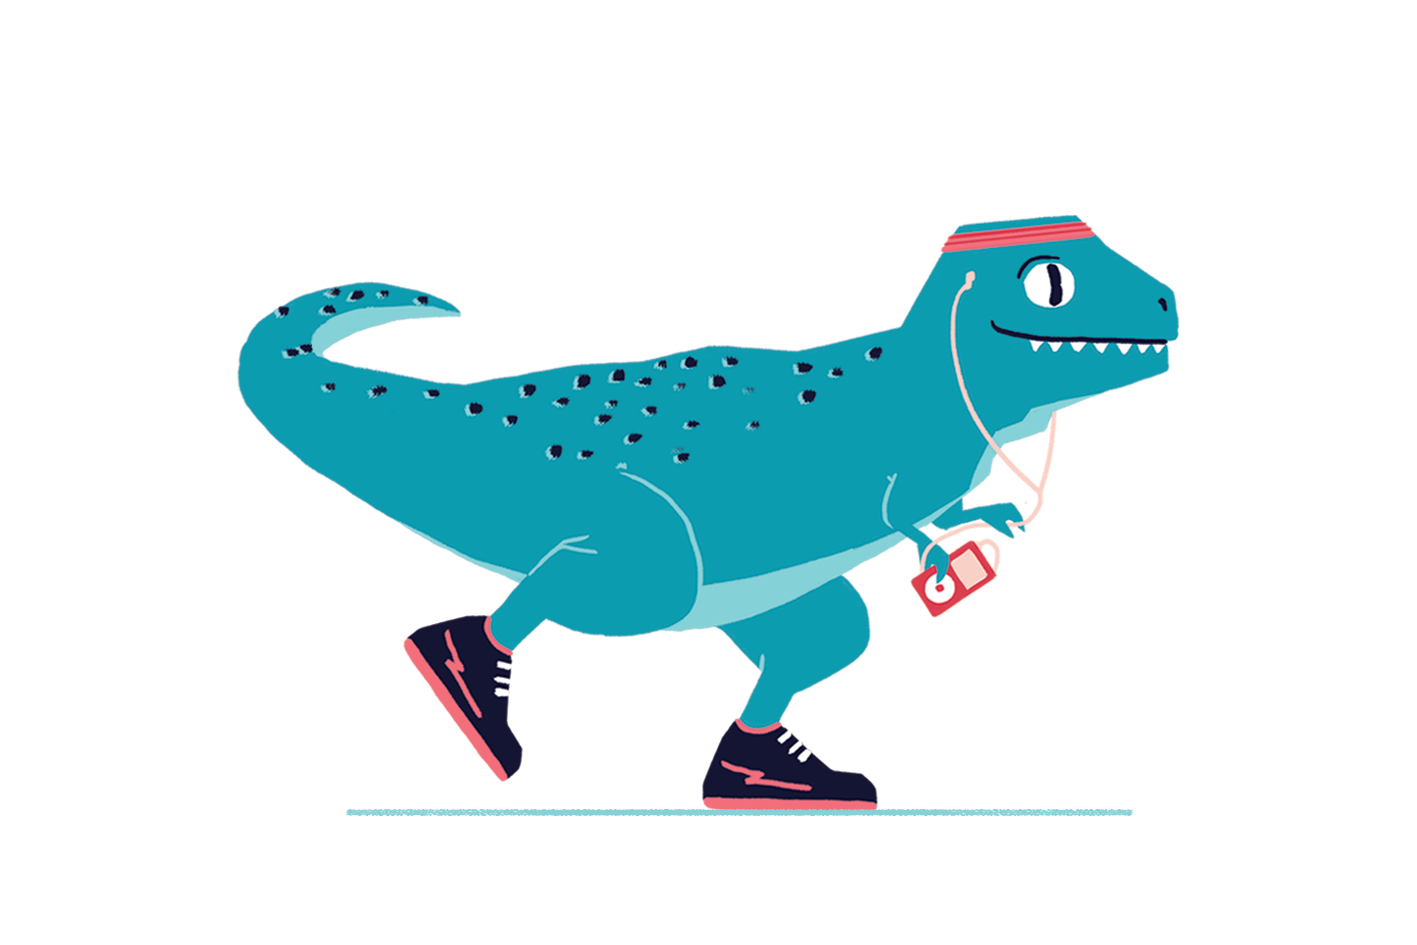 dino_01.png